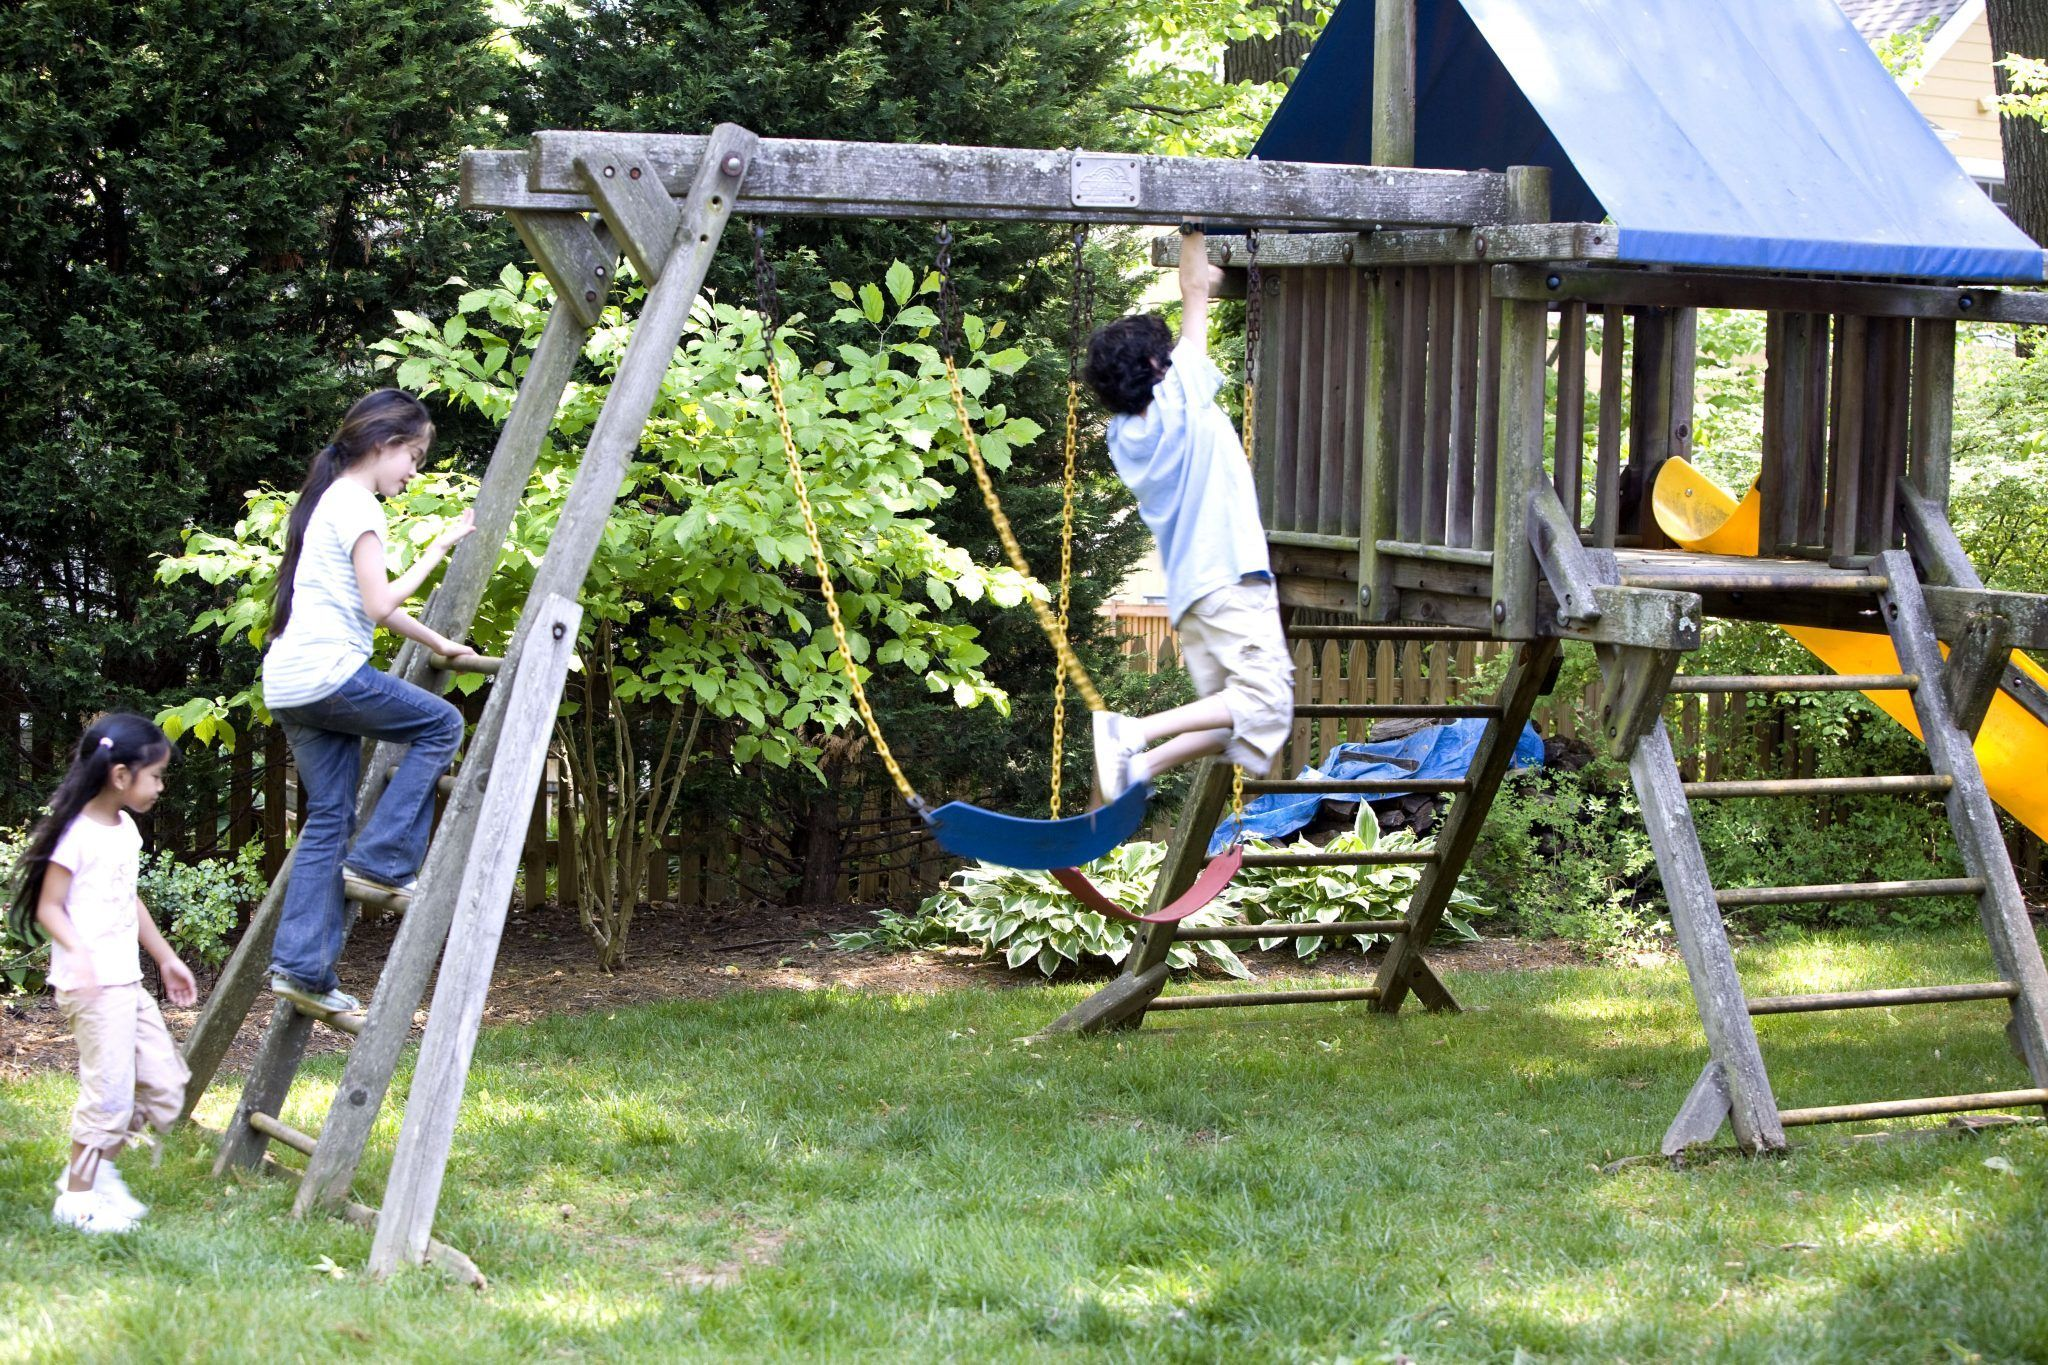 Kid Friendly Backyard Ideas-use-fences-creatively-kids having fun